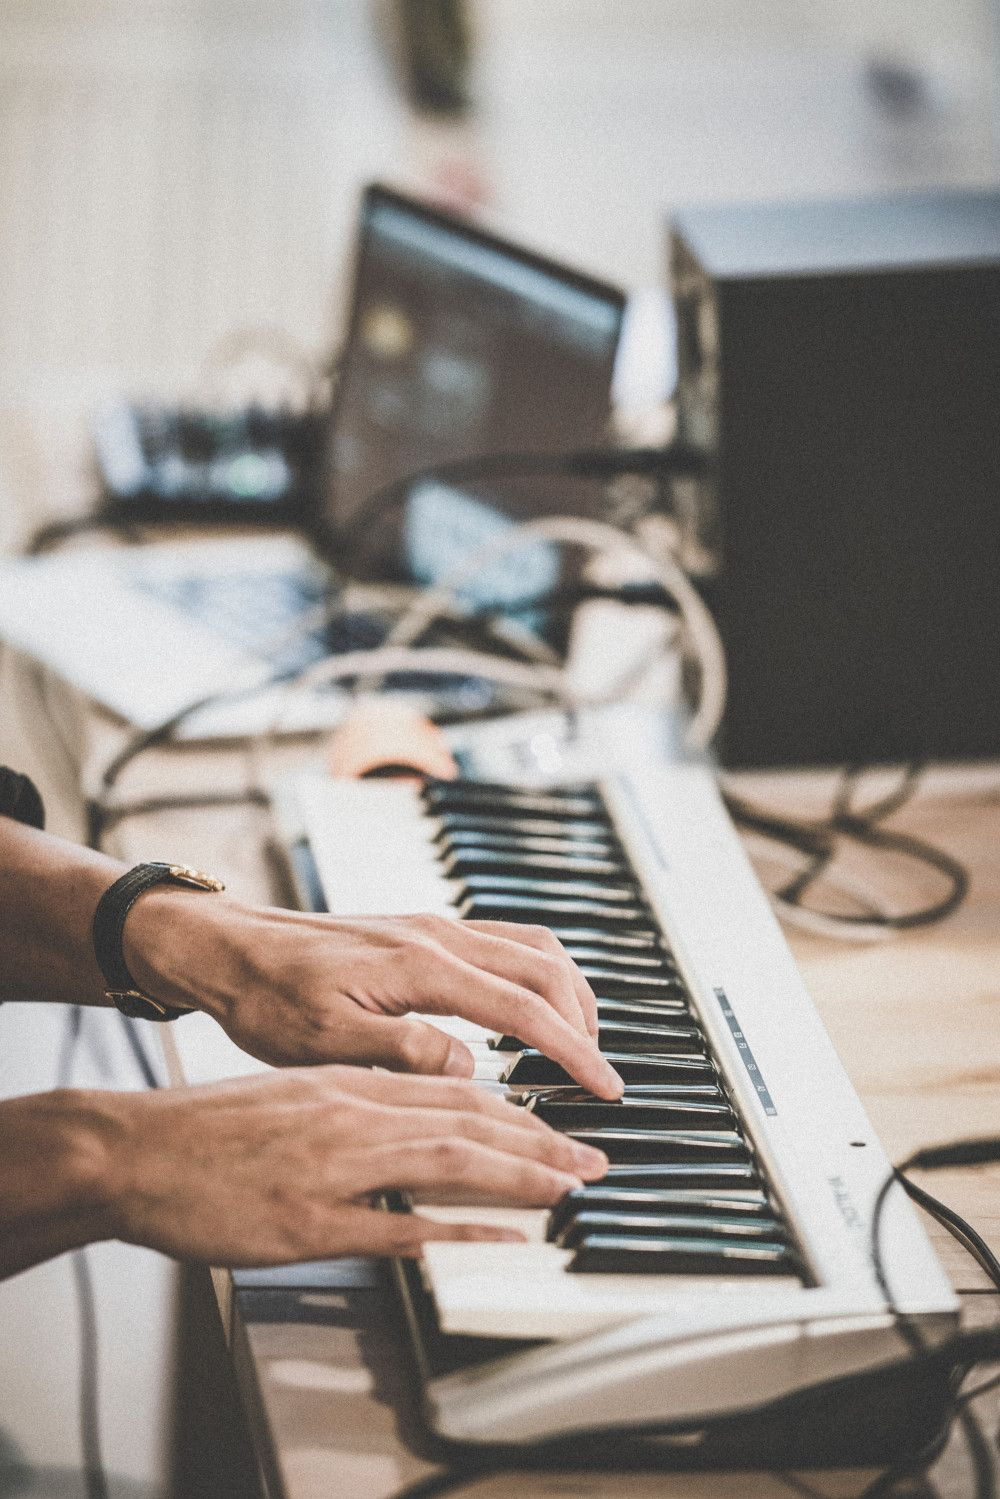 a man playing a keyboard with a computer in the background